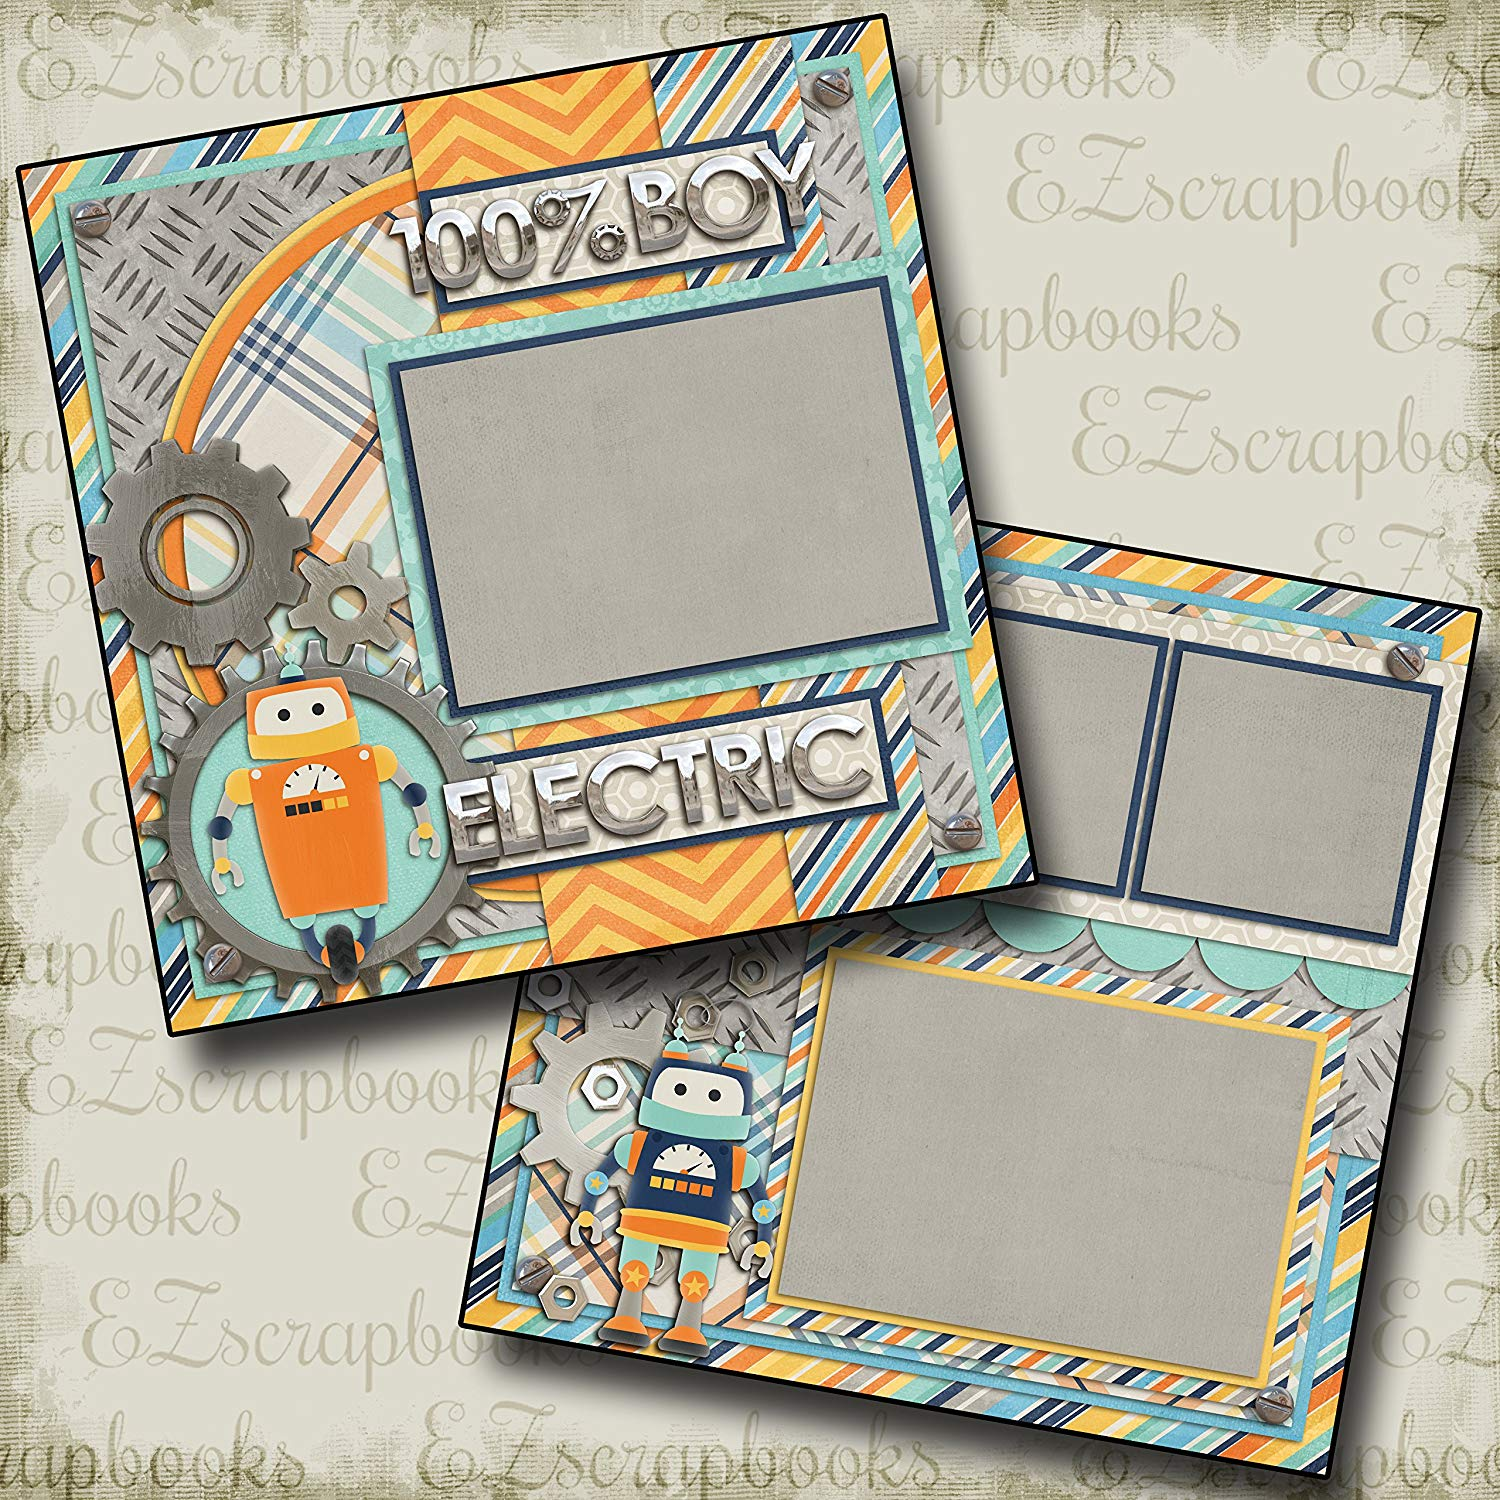 ELECTRIC - Premade Scrapbook Pages - EZ Layout 323